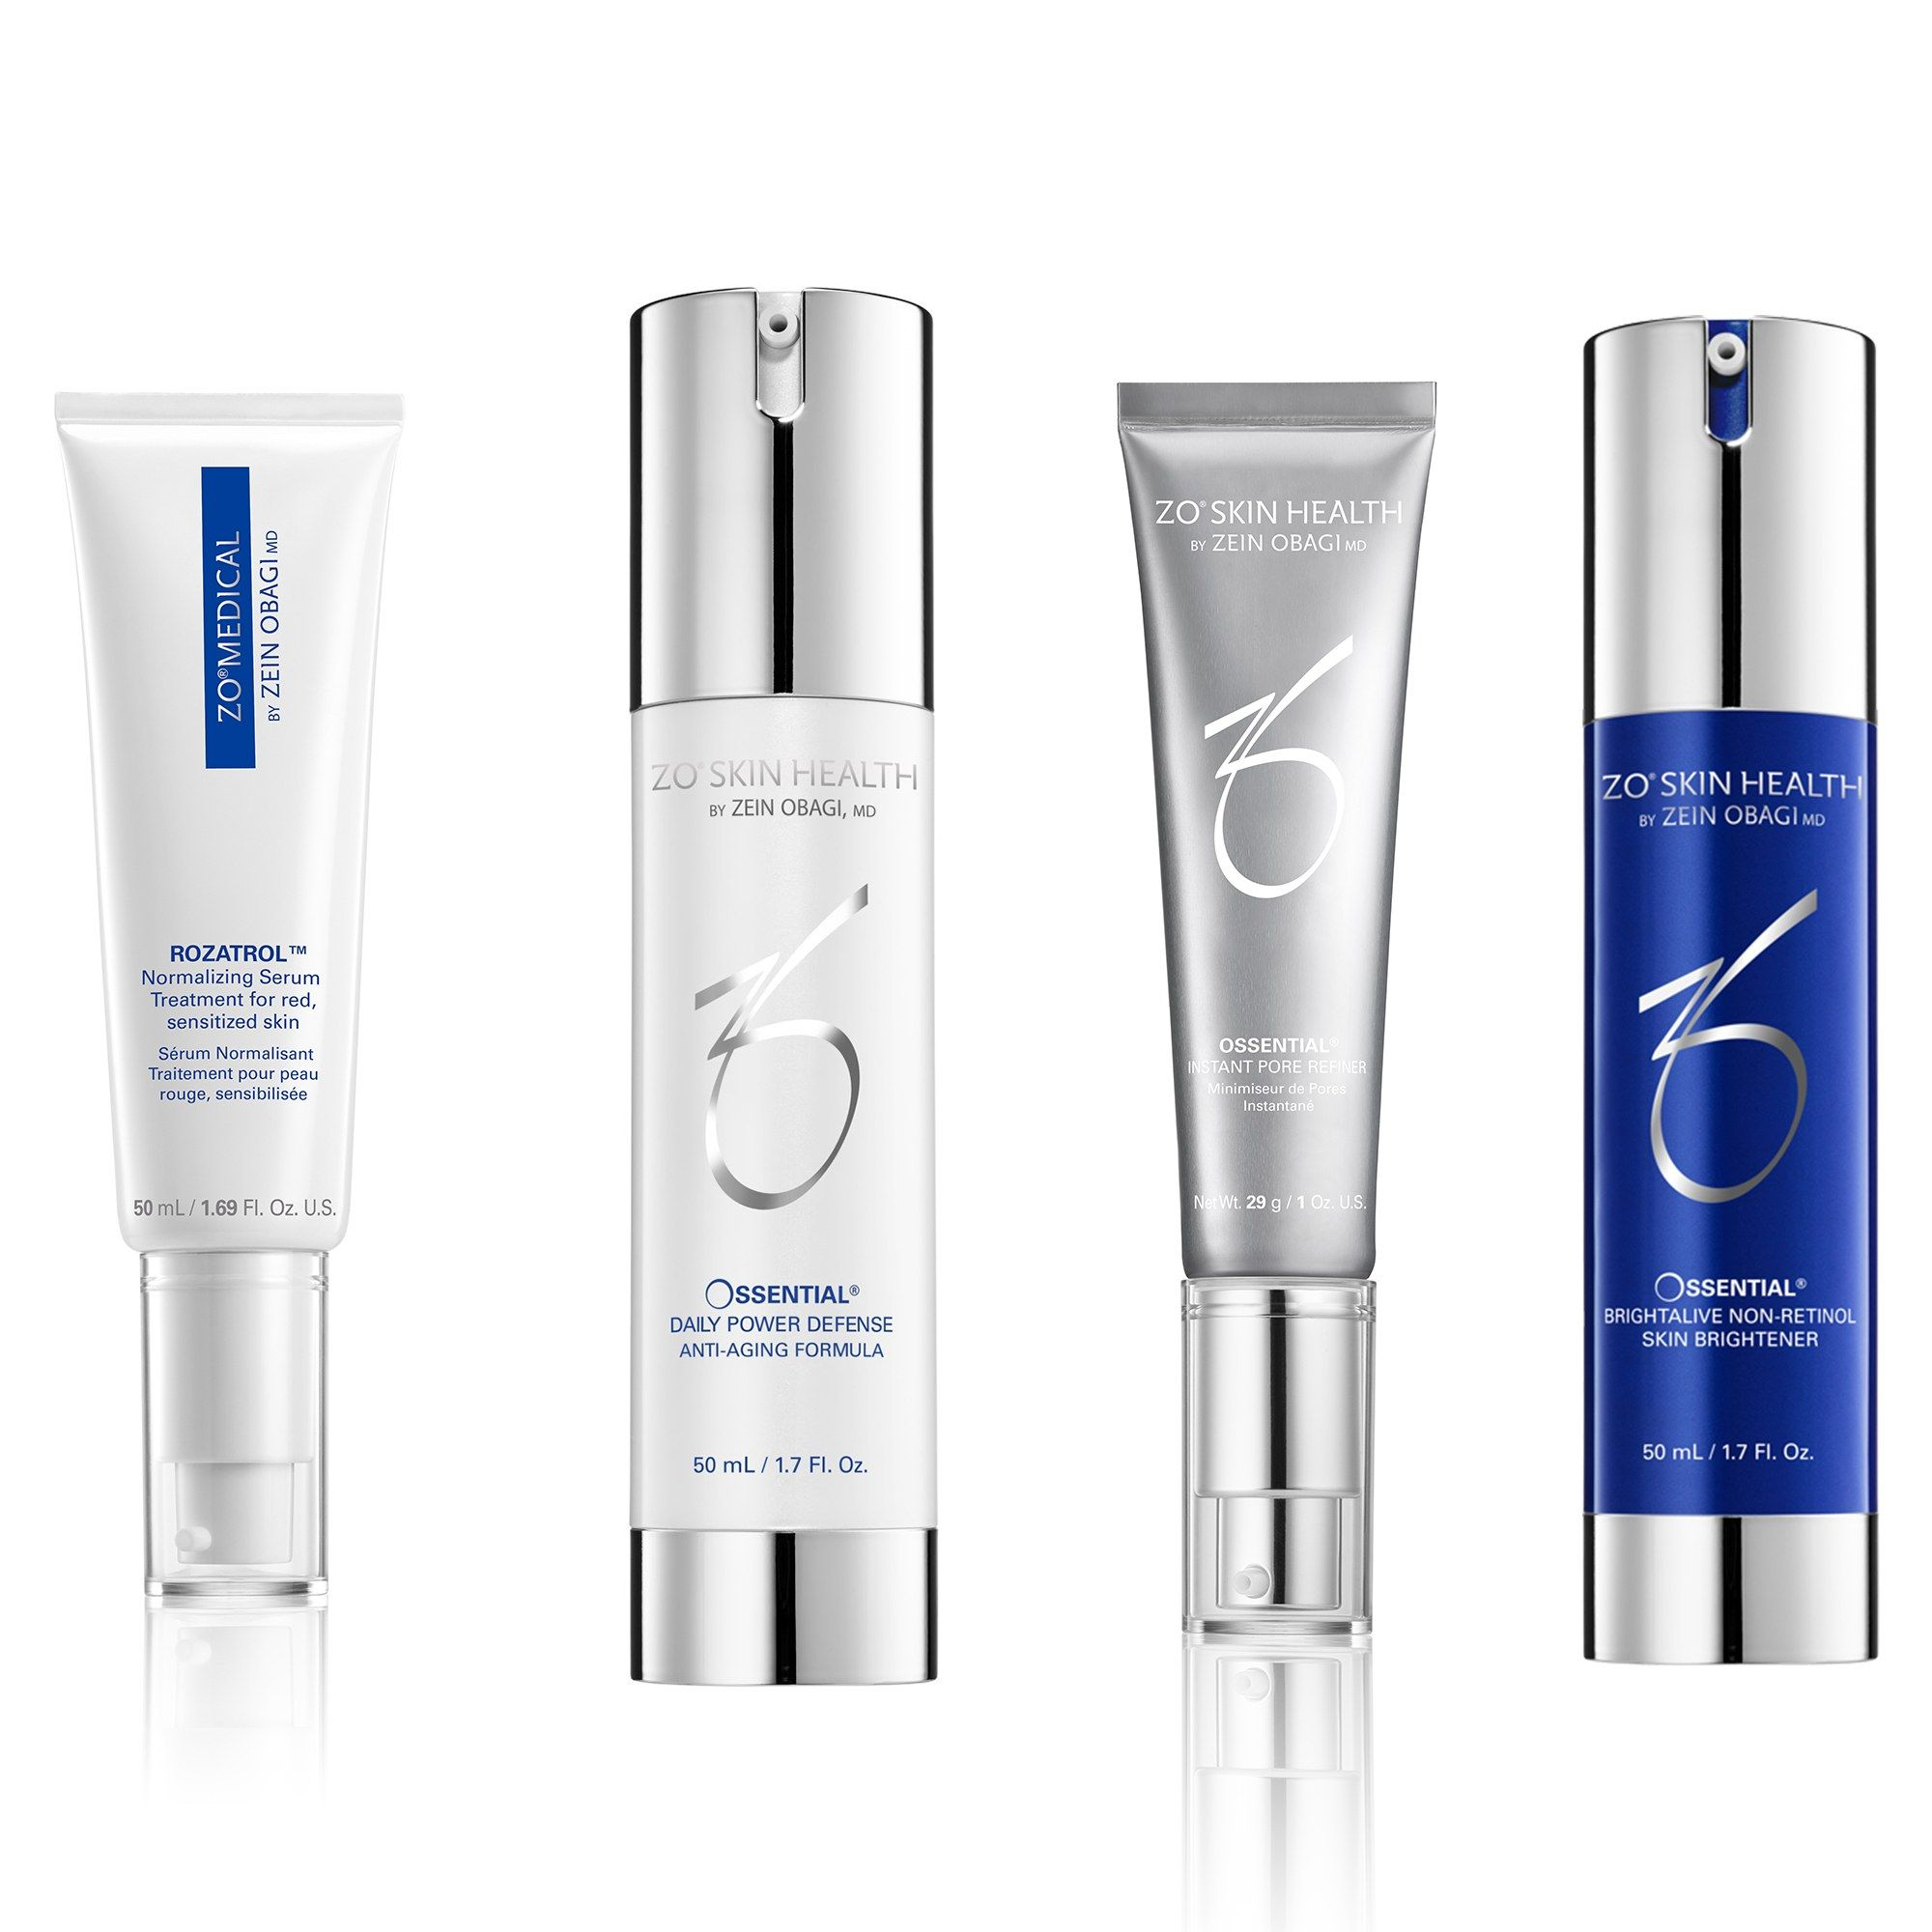 The 6 Best Skin Care Lines Made By Dermatologists And Plastic Surgeons Best Skin Care Brands Skin Care Brands Anti Aging Skin Care